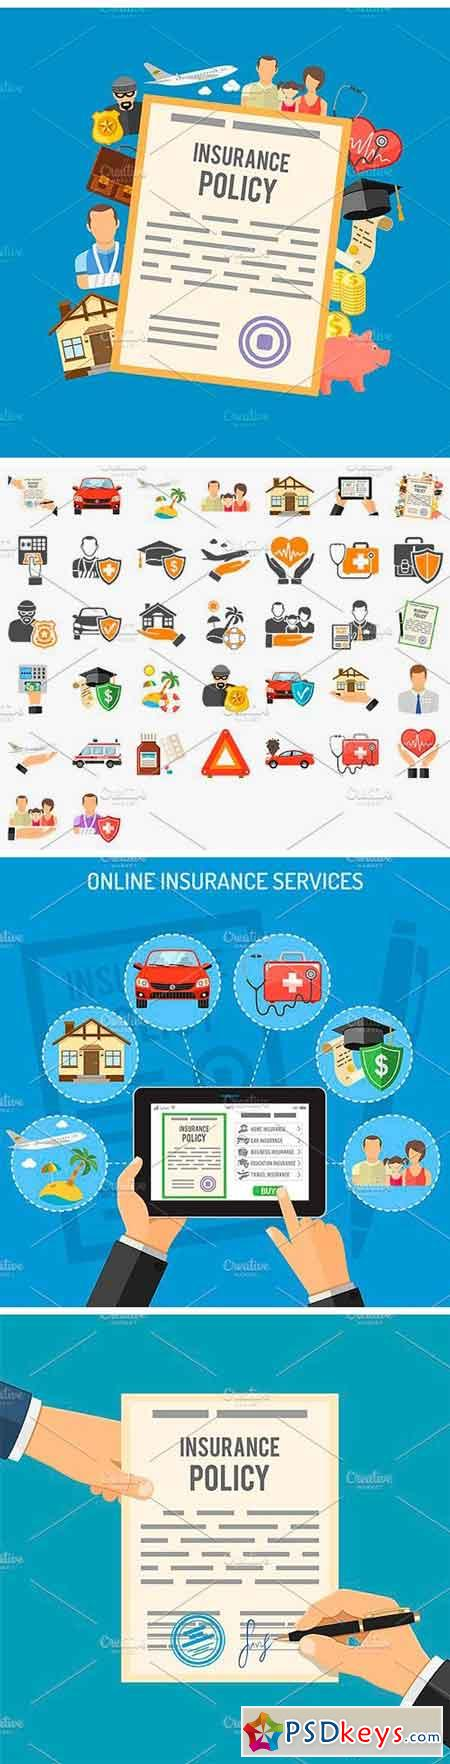 Insurance Services 1525779